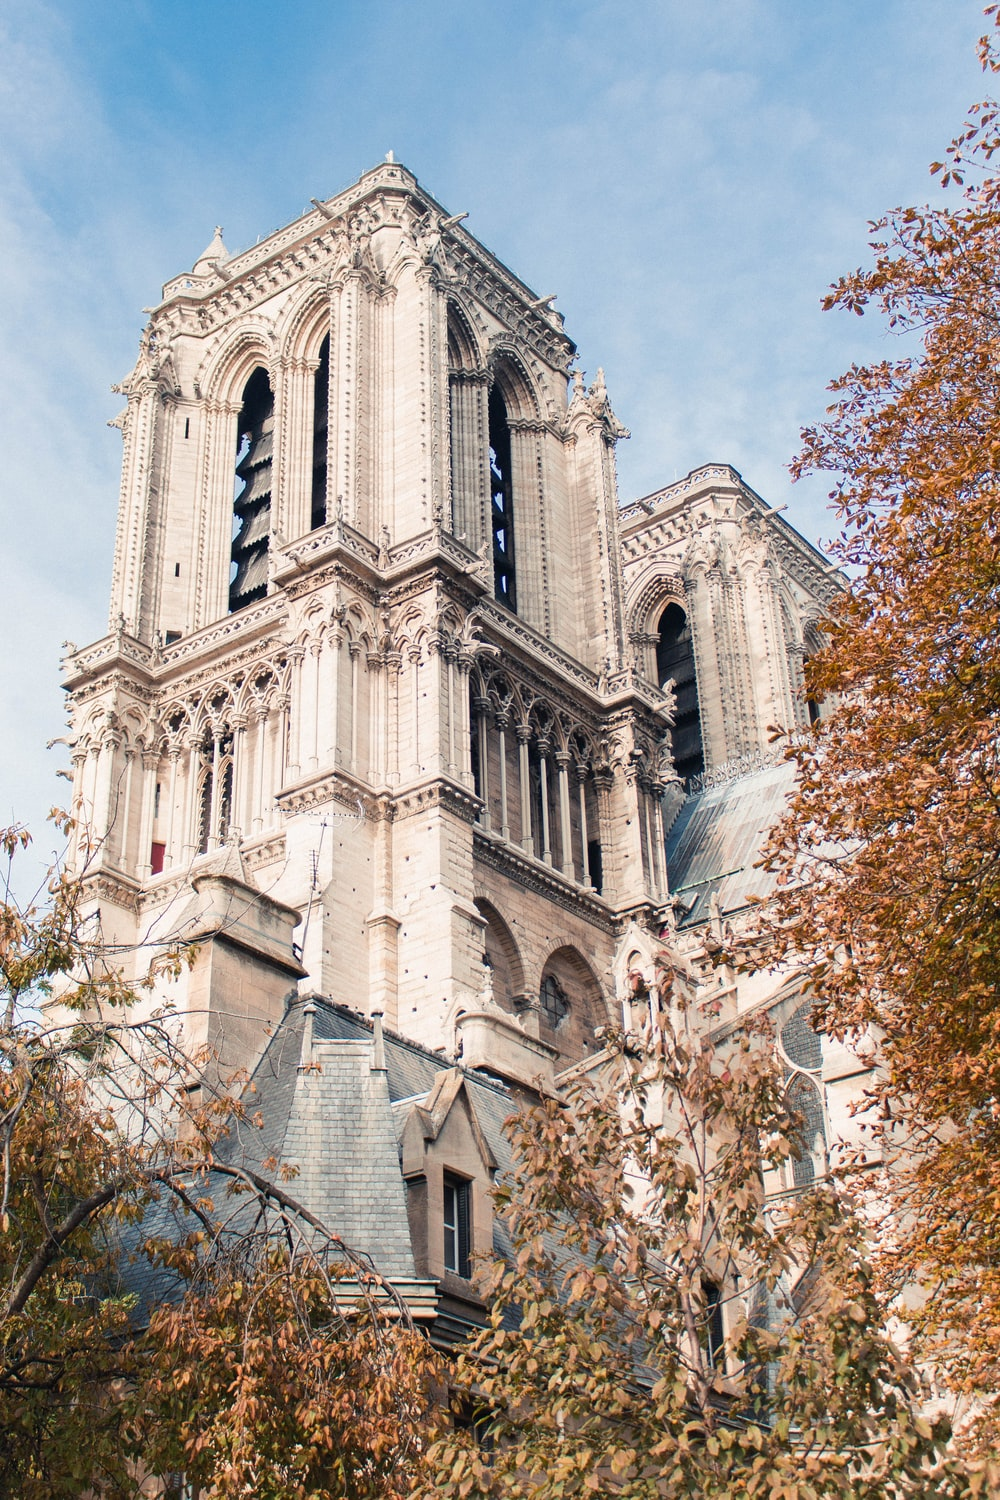 Notre Dame in Paris under blue and white skies